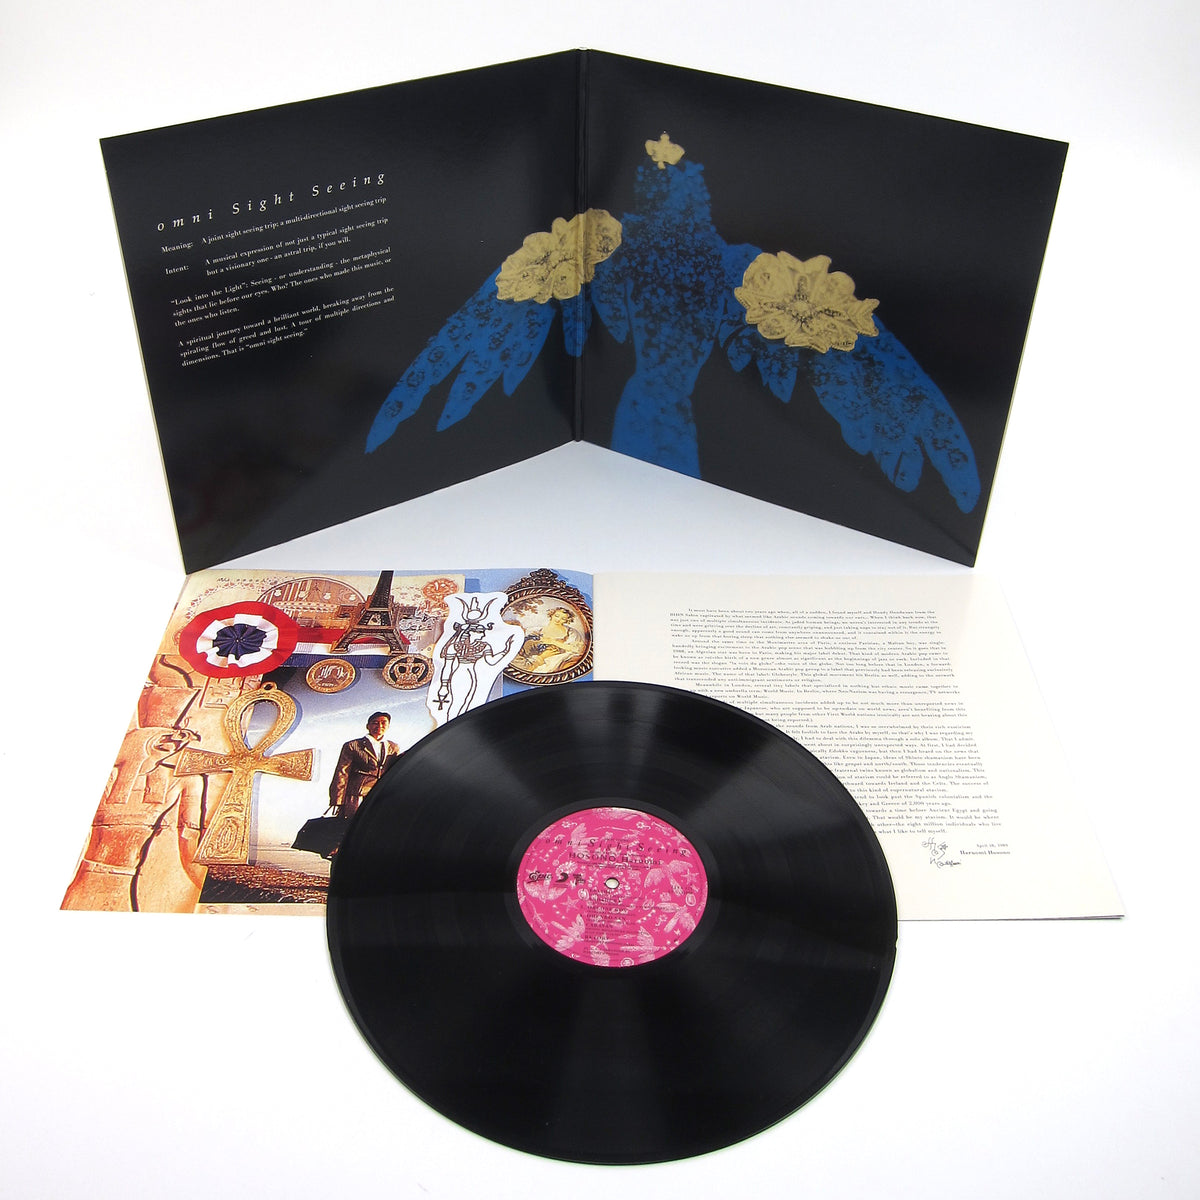 Haruomi Hosono: Omni Sight Seeing Vinyl LP